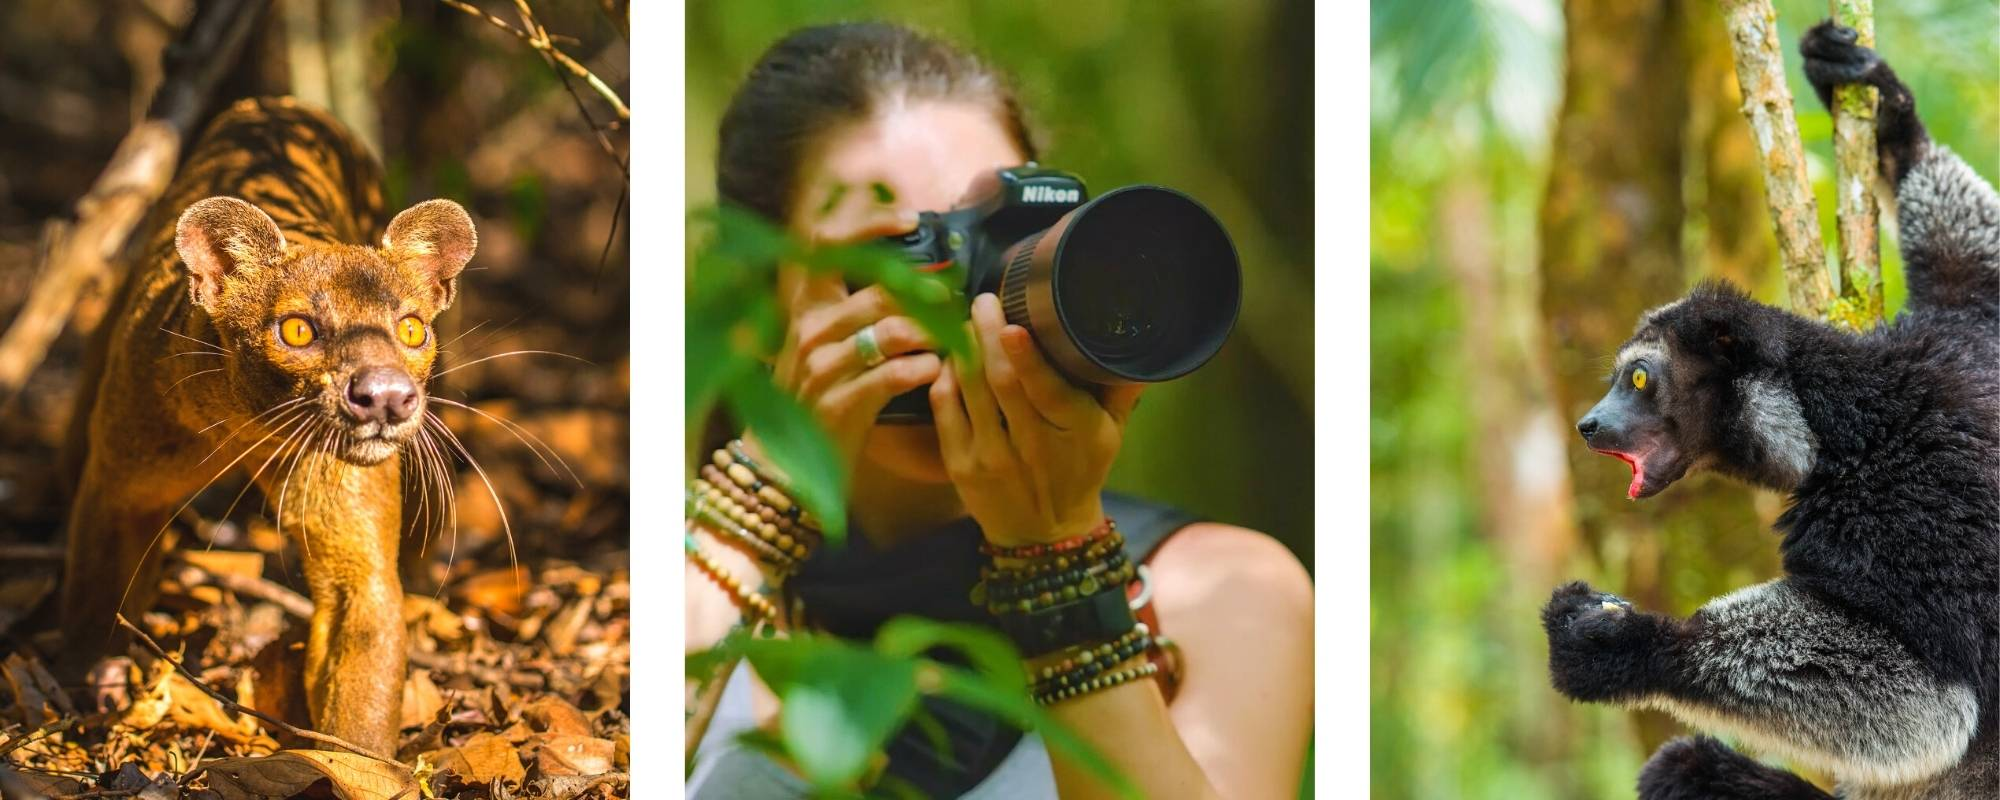 Fossa in Madagascar, Shannon Wild photographing in jungle, Indri in tree calling